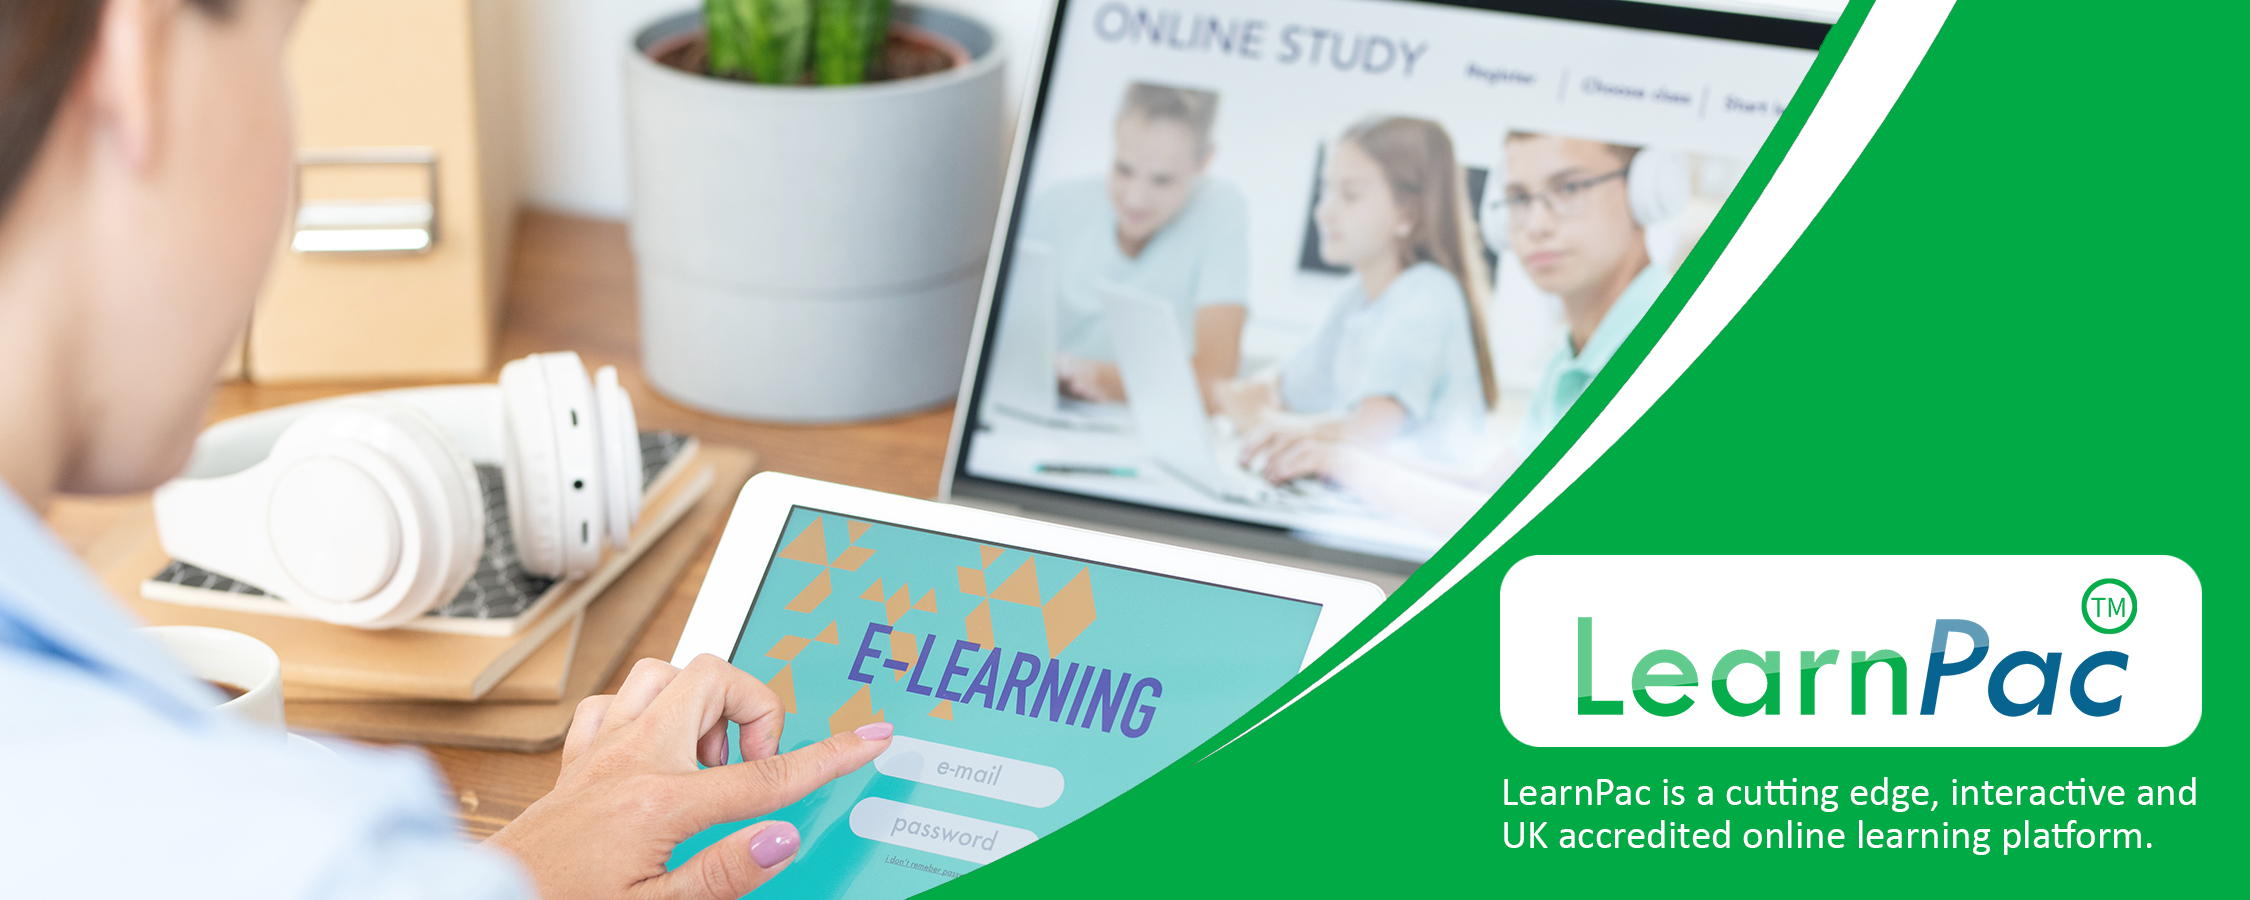 Donning and Doffing PPE for Care Workers - Online Learning Courses - E-Learning Courses - LearnPac Systems UK --